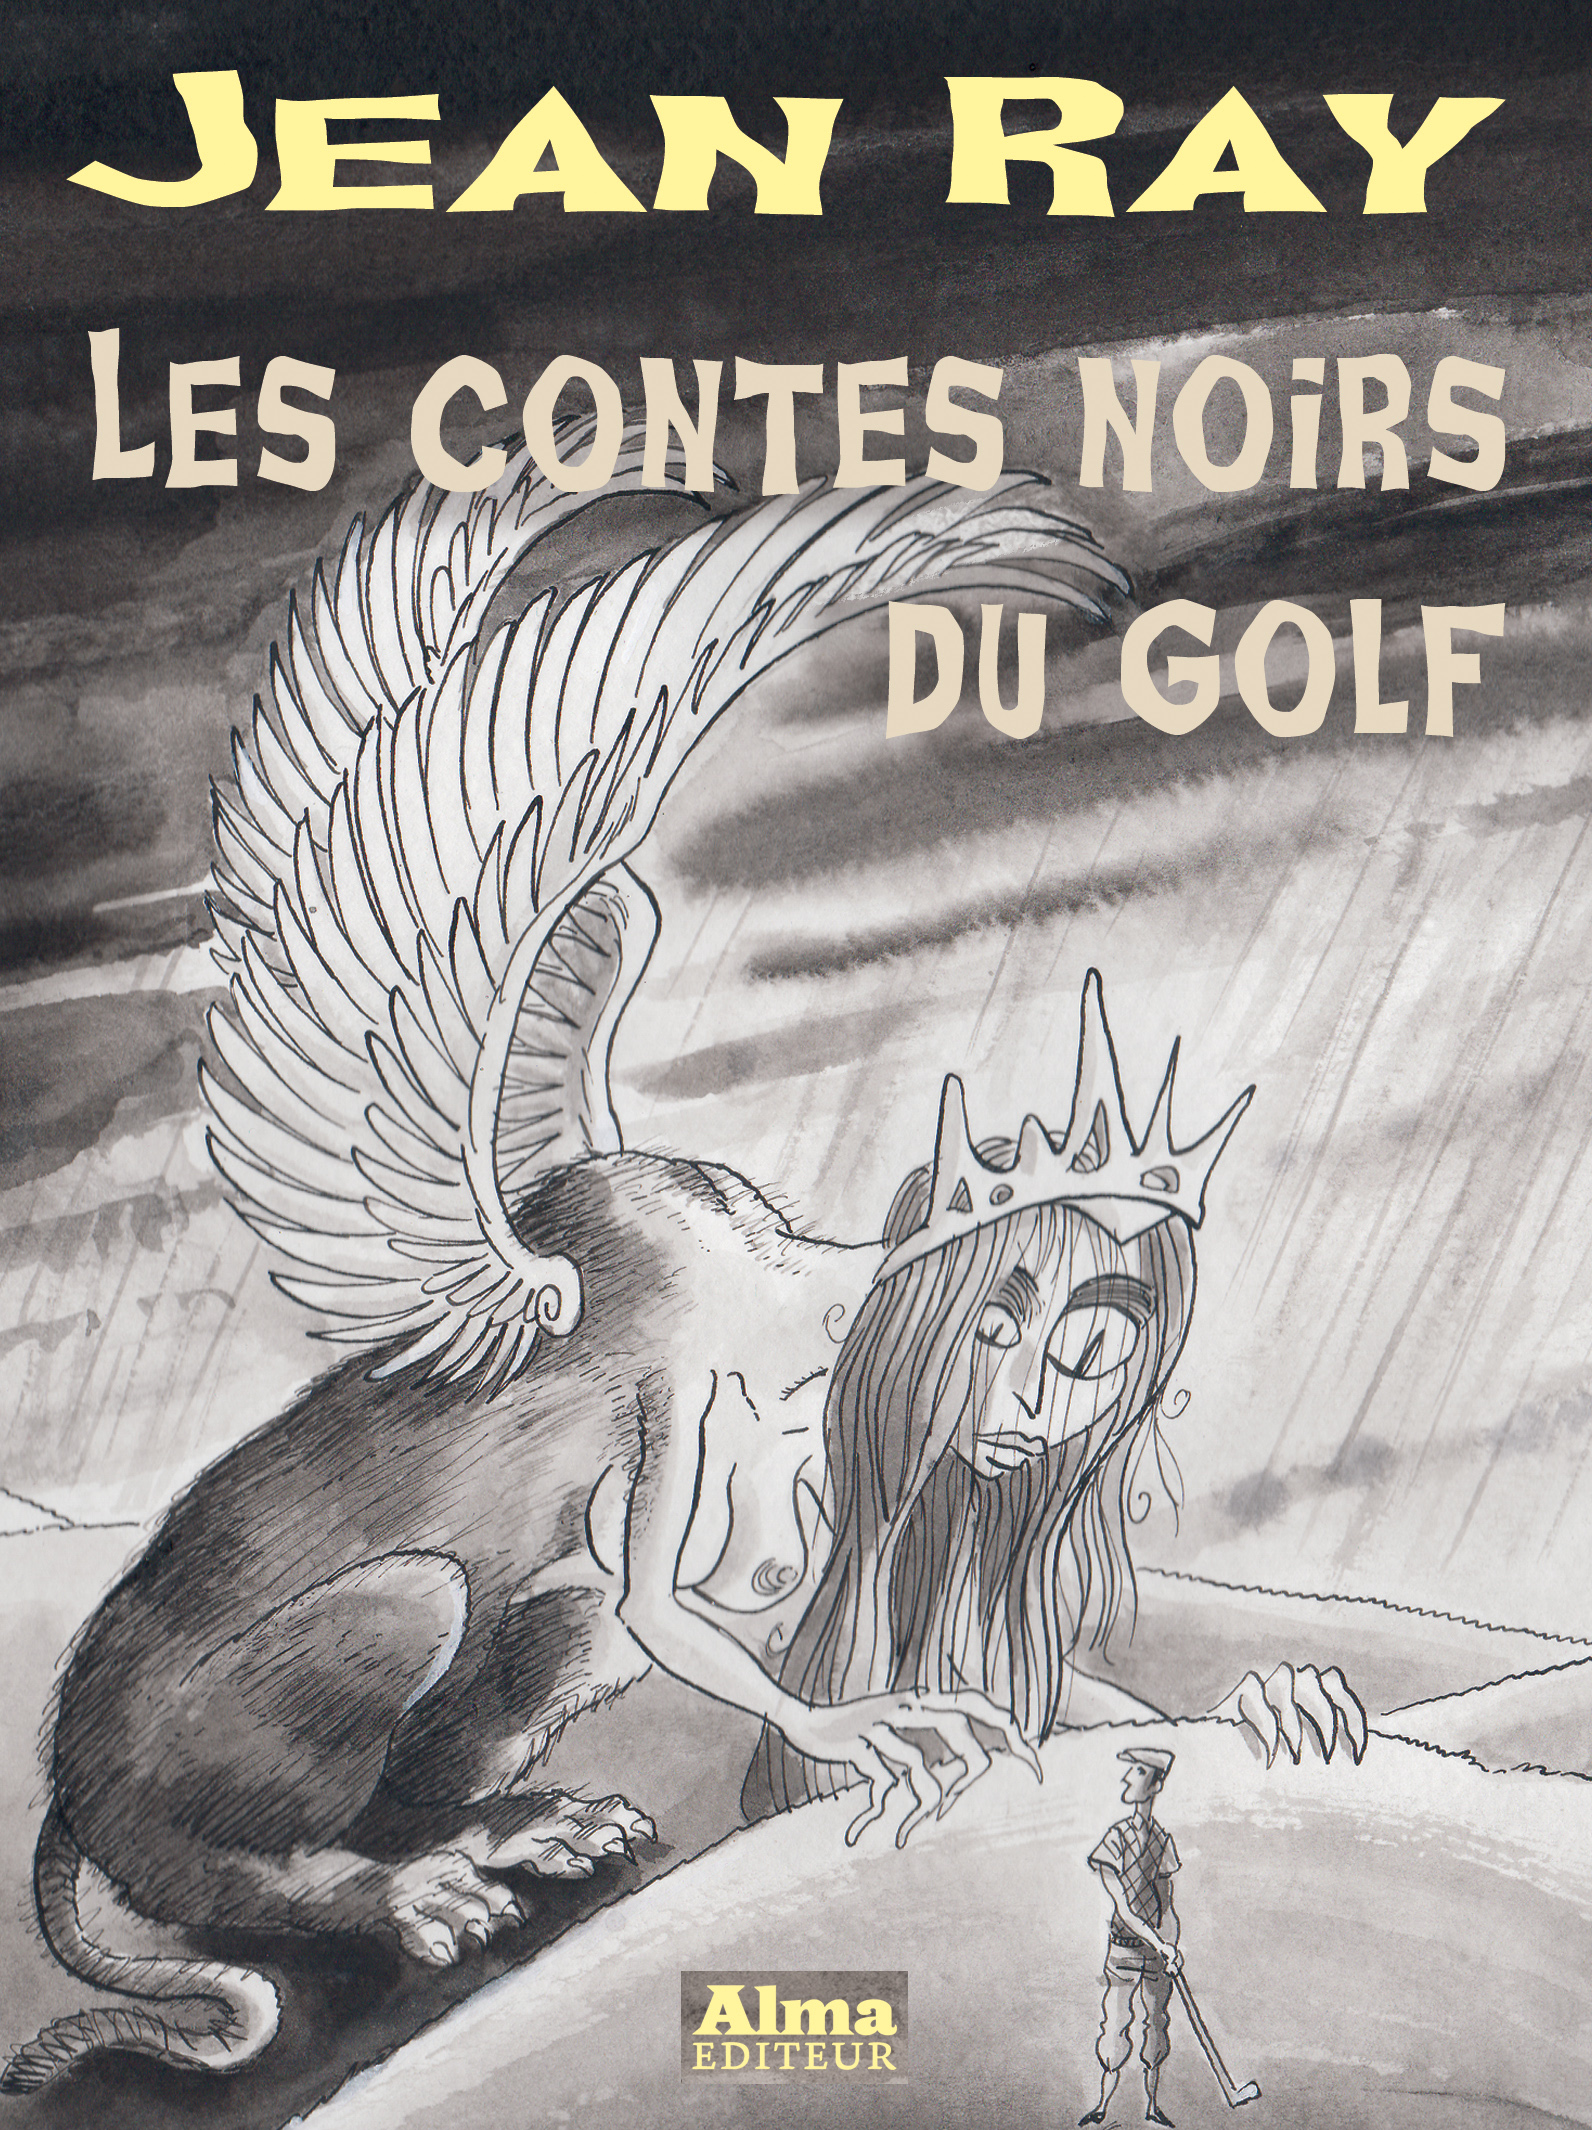 Philippe Foerster Mu Blondeau Les contes noirs du golf Jean Ray Alma